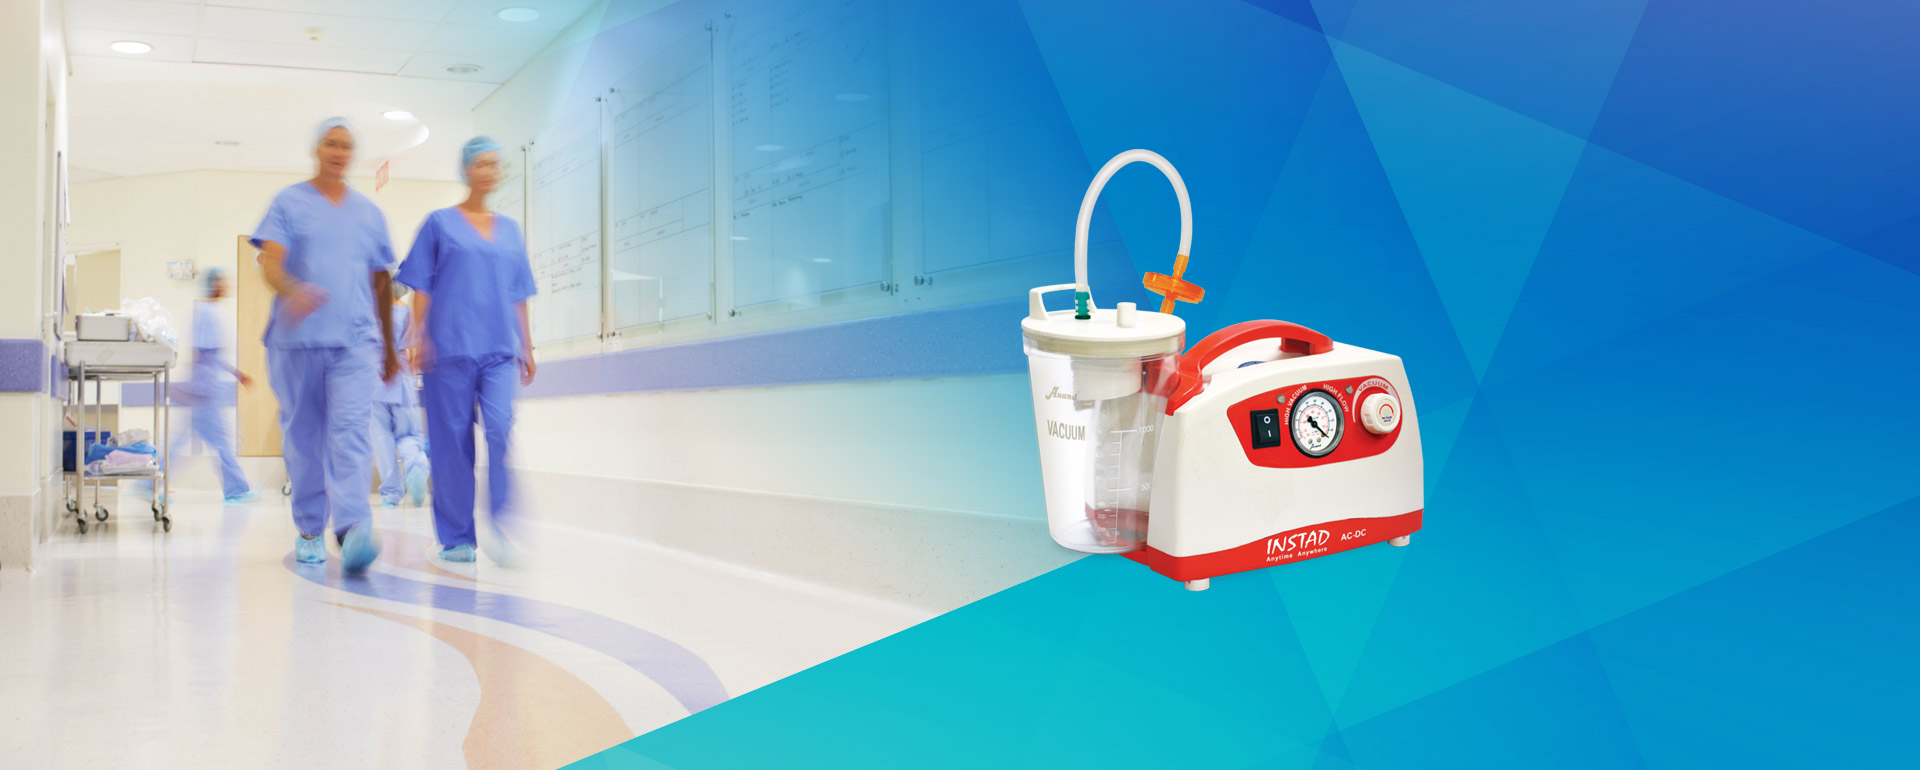 Battery Suction Banner